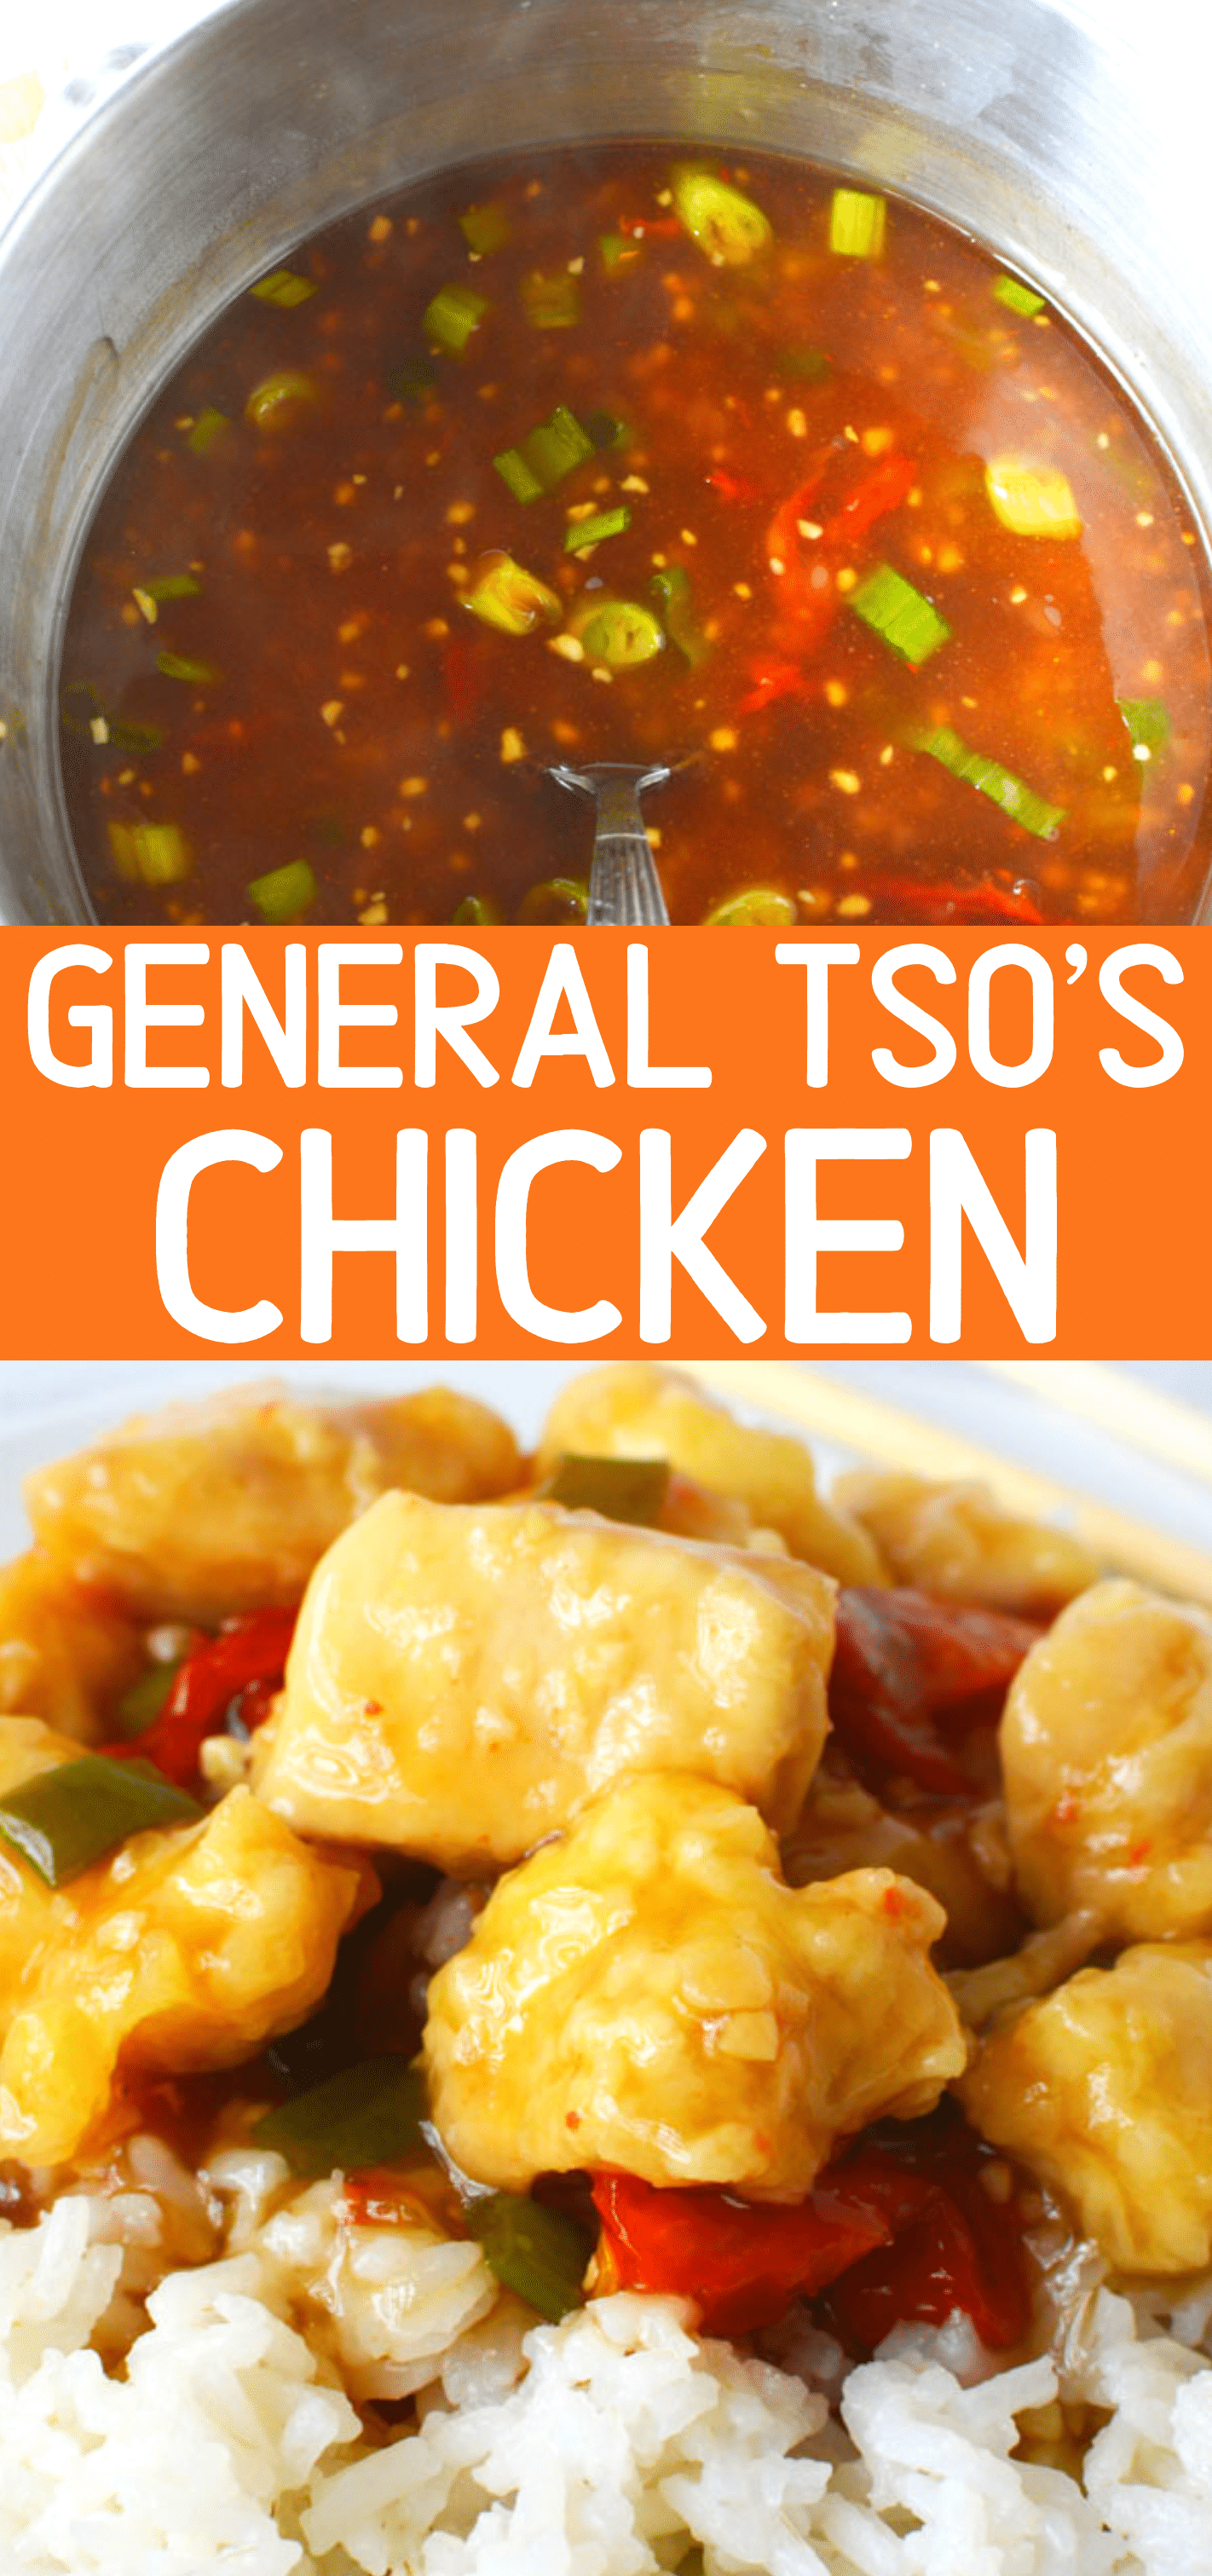 General Tso's Chicken Recipe, an easy Chinese restaurant copycat Recipe with garlic and ginger #chicken #recipes #chinesefood #takeout #dinner